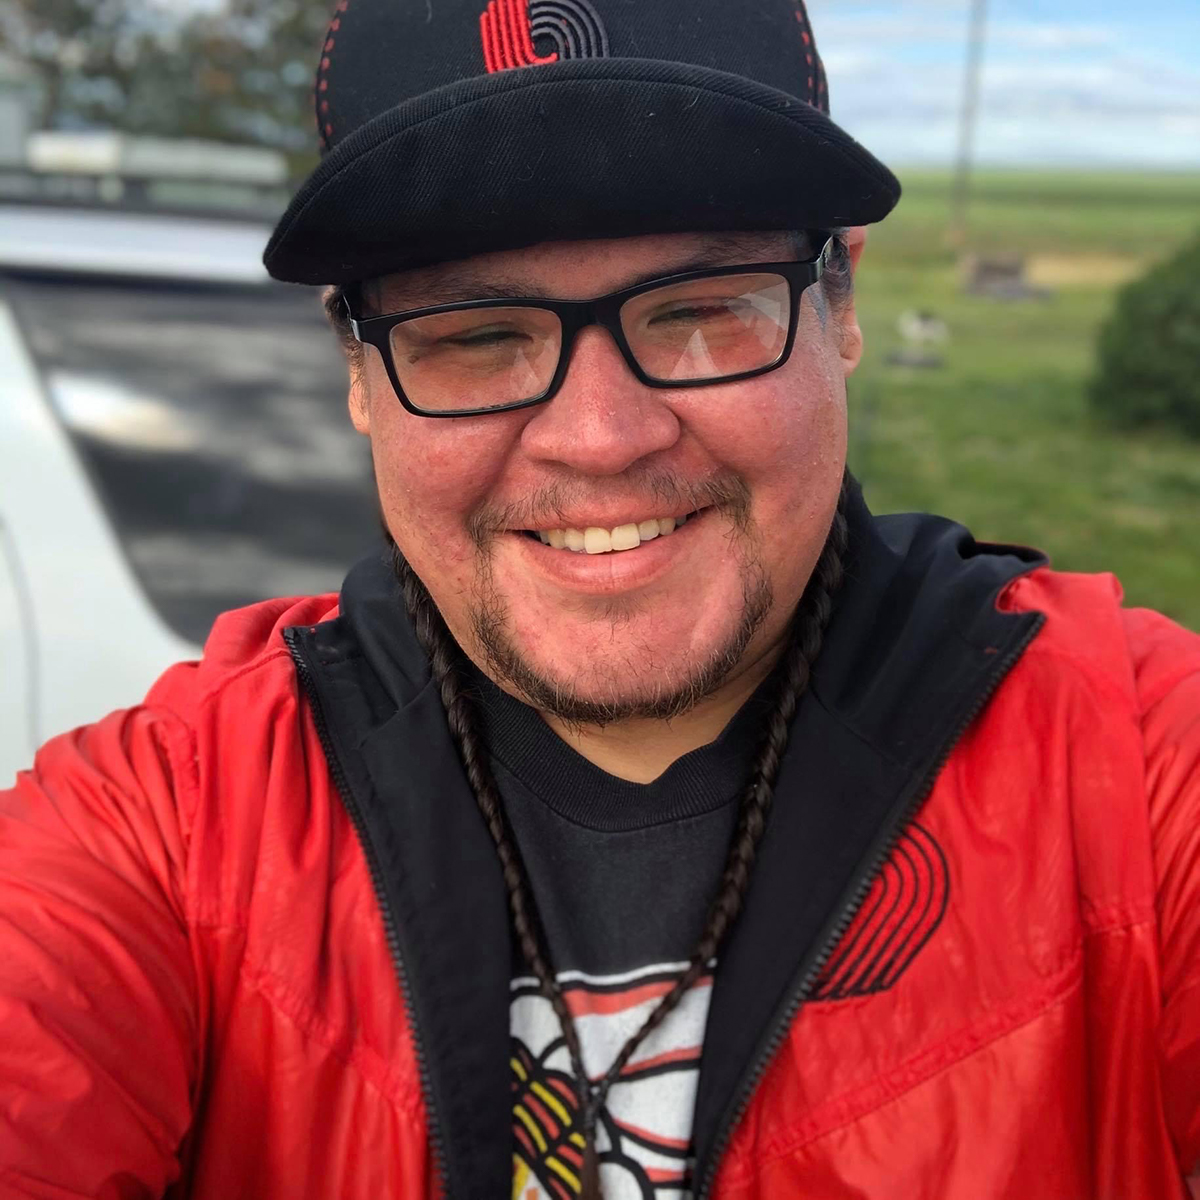 Closeup of smiling man with glasses and red jacket